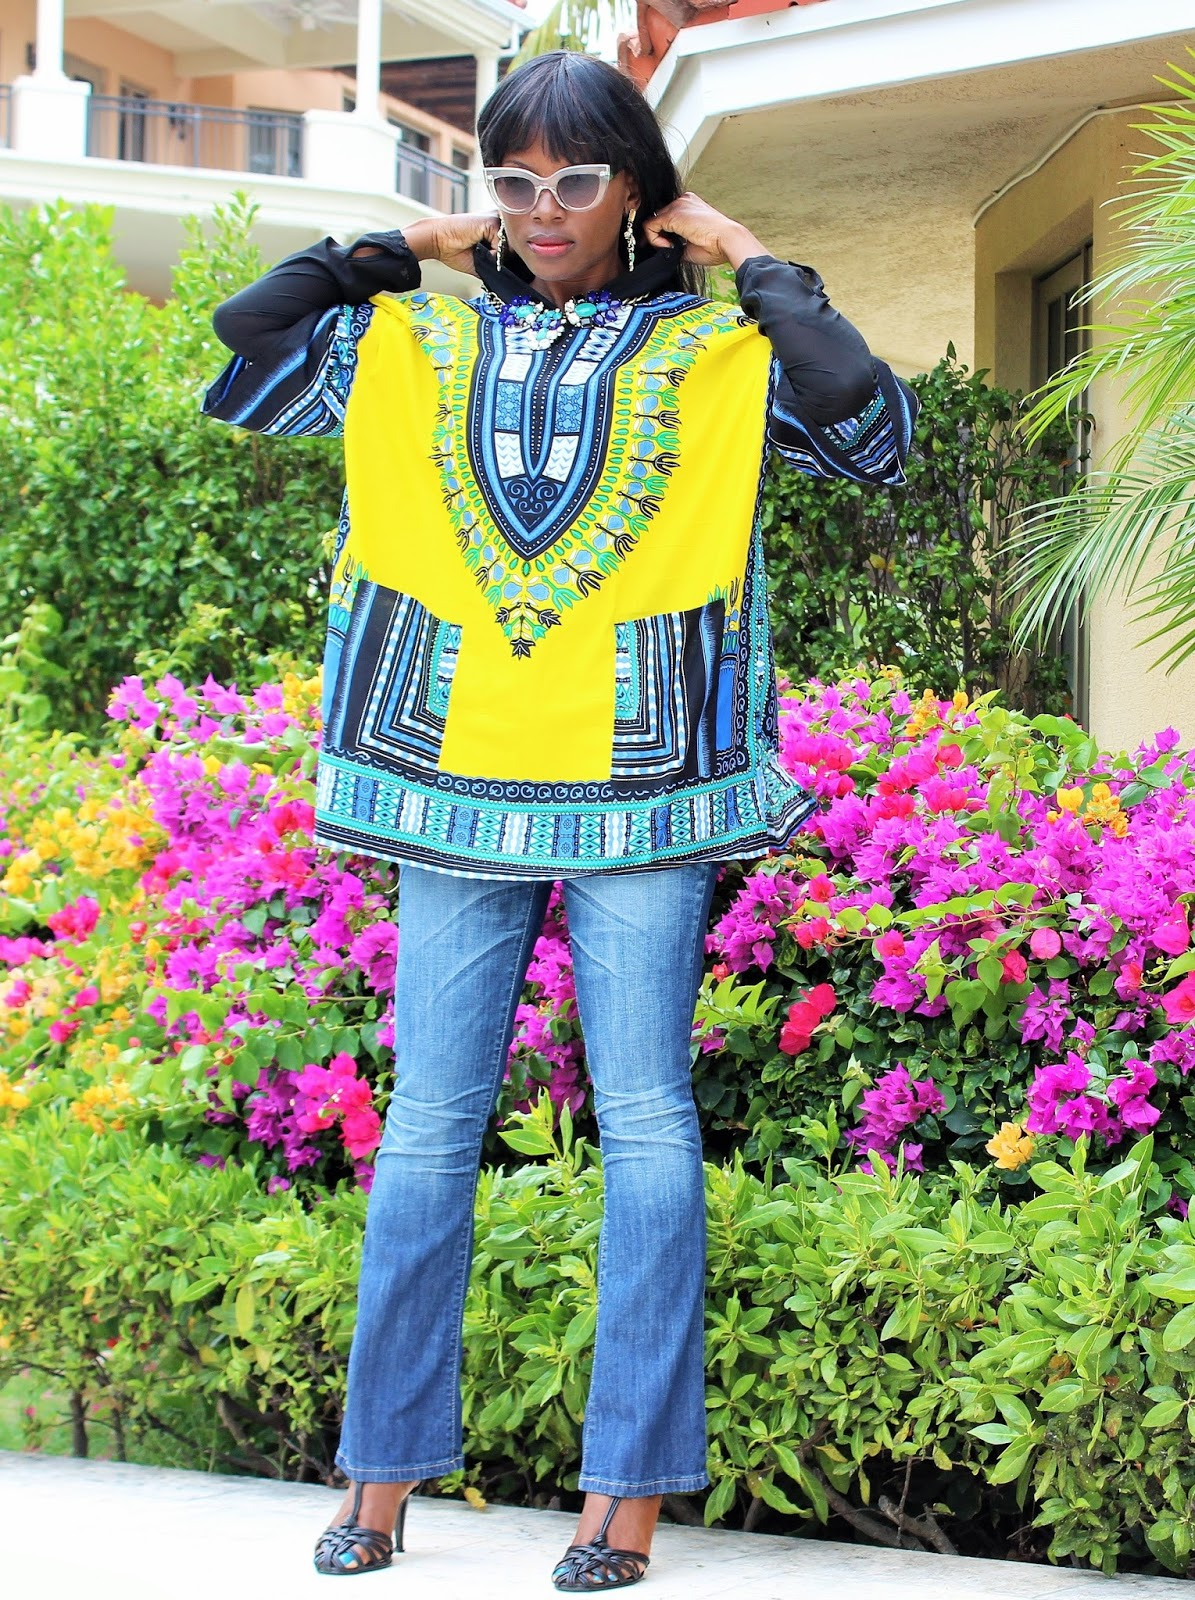 TREND ALERT: THE DASHIKI SHIRT